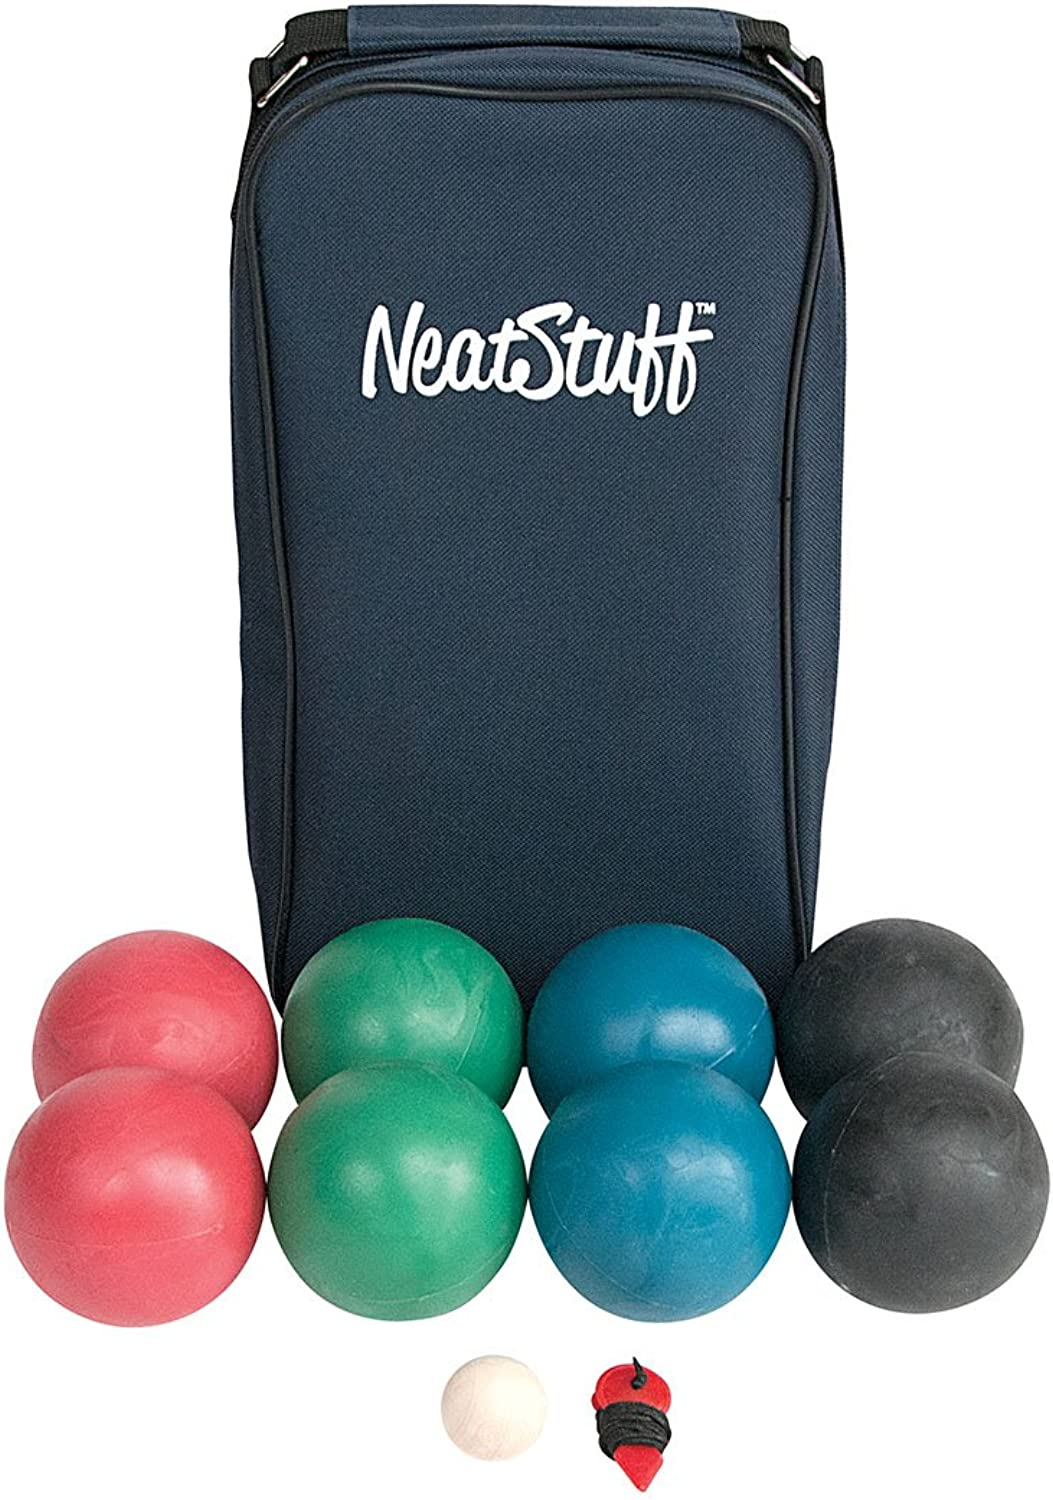 Neat Stuff Bocce Ball Set with Carrying Case  Up to 8 Players